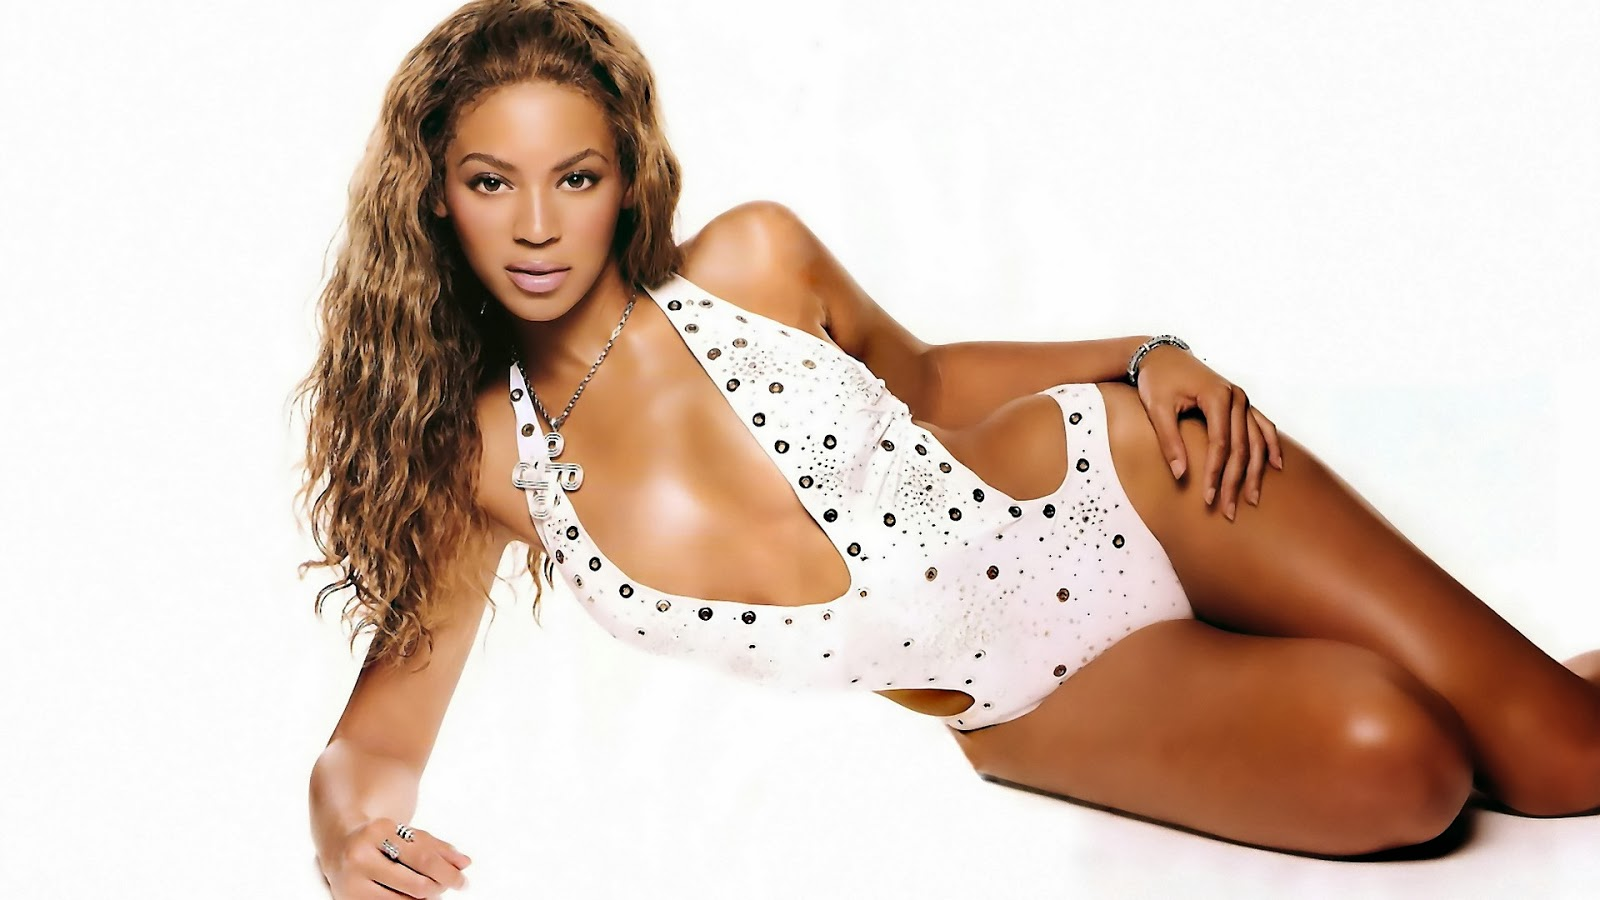 Beyonce Sexy Images